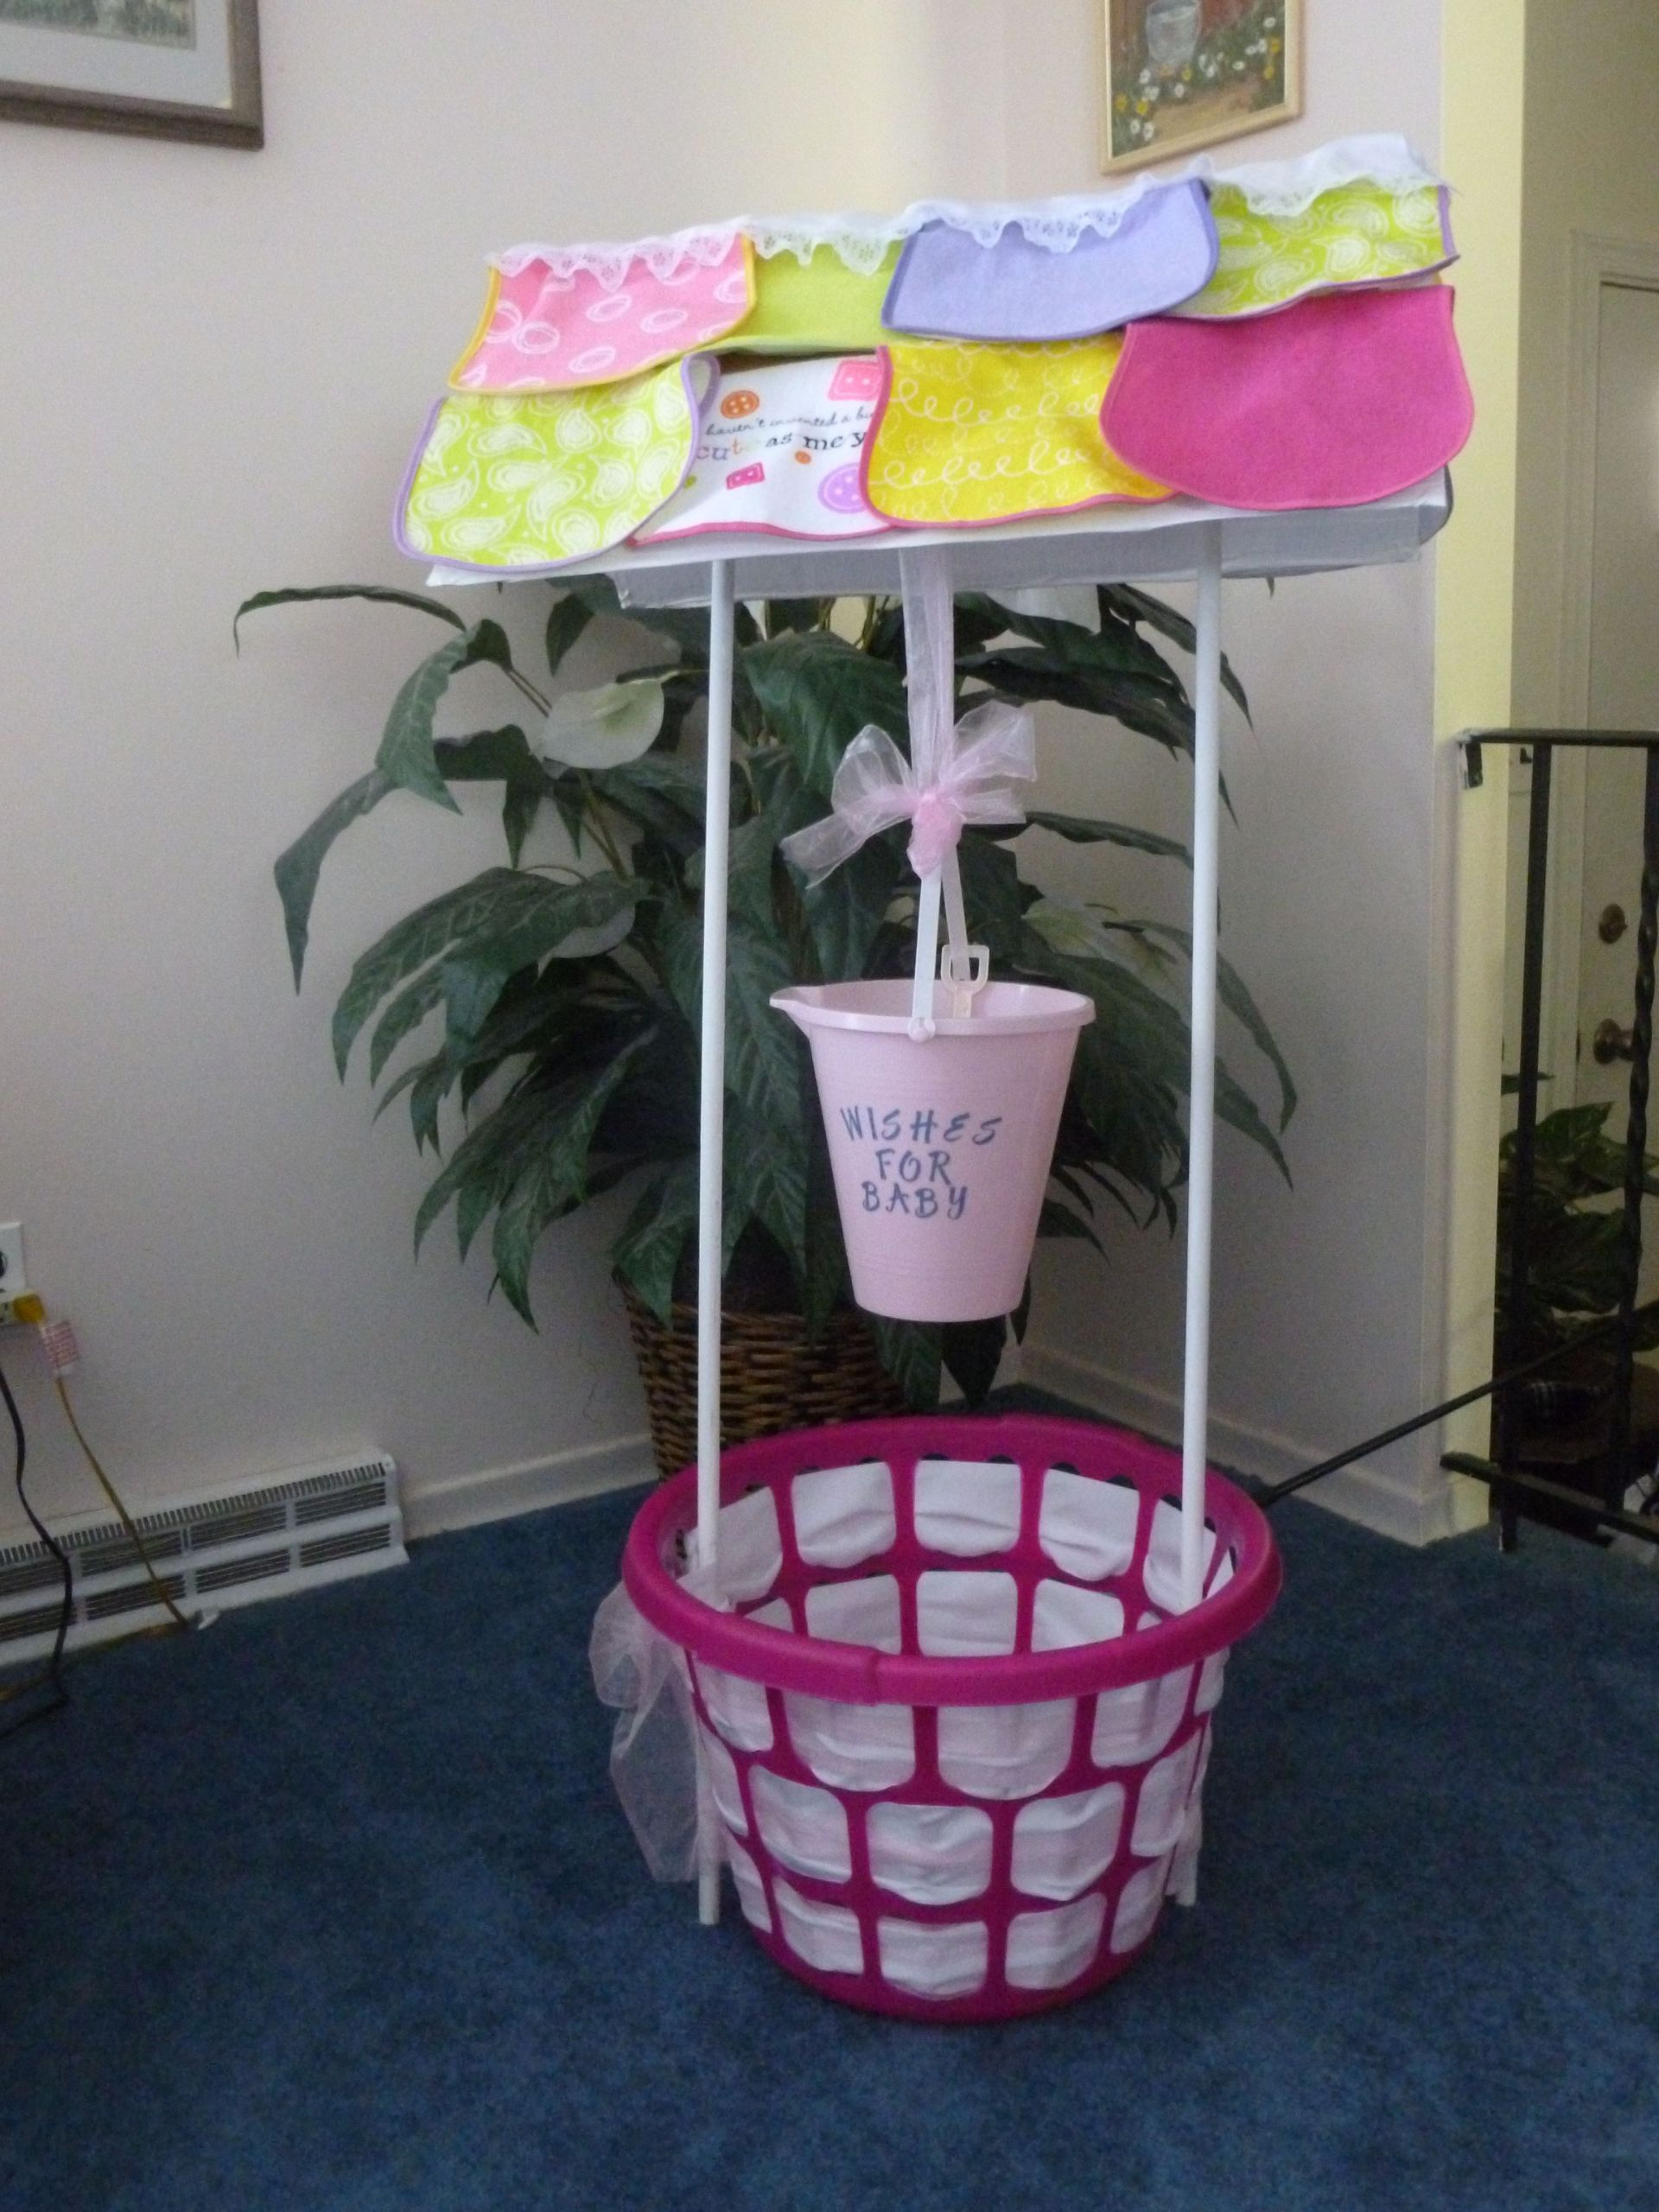 Baby Shower Wishing Well Gift Ideas  I was asked to make a wishing well for a baby shower This